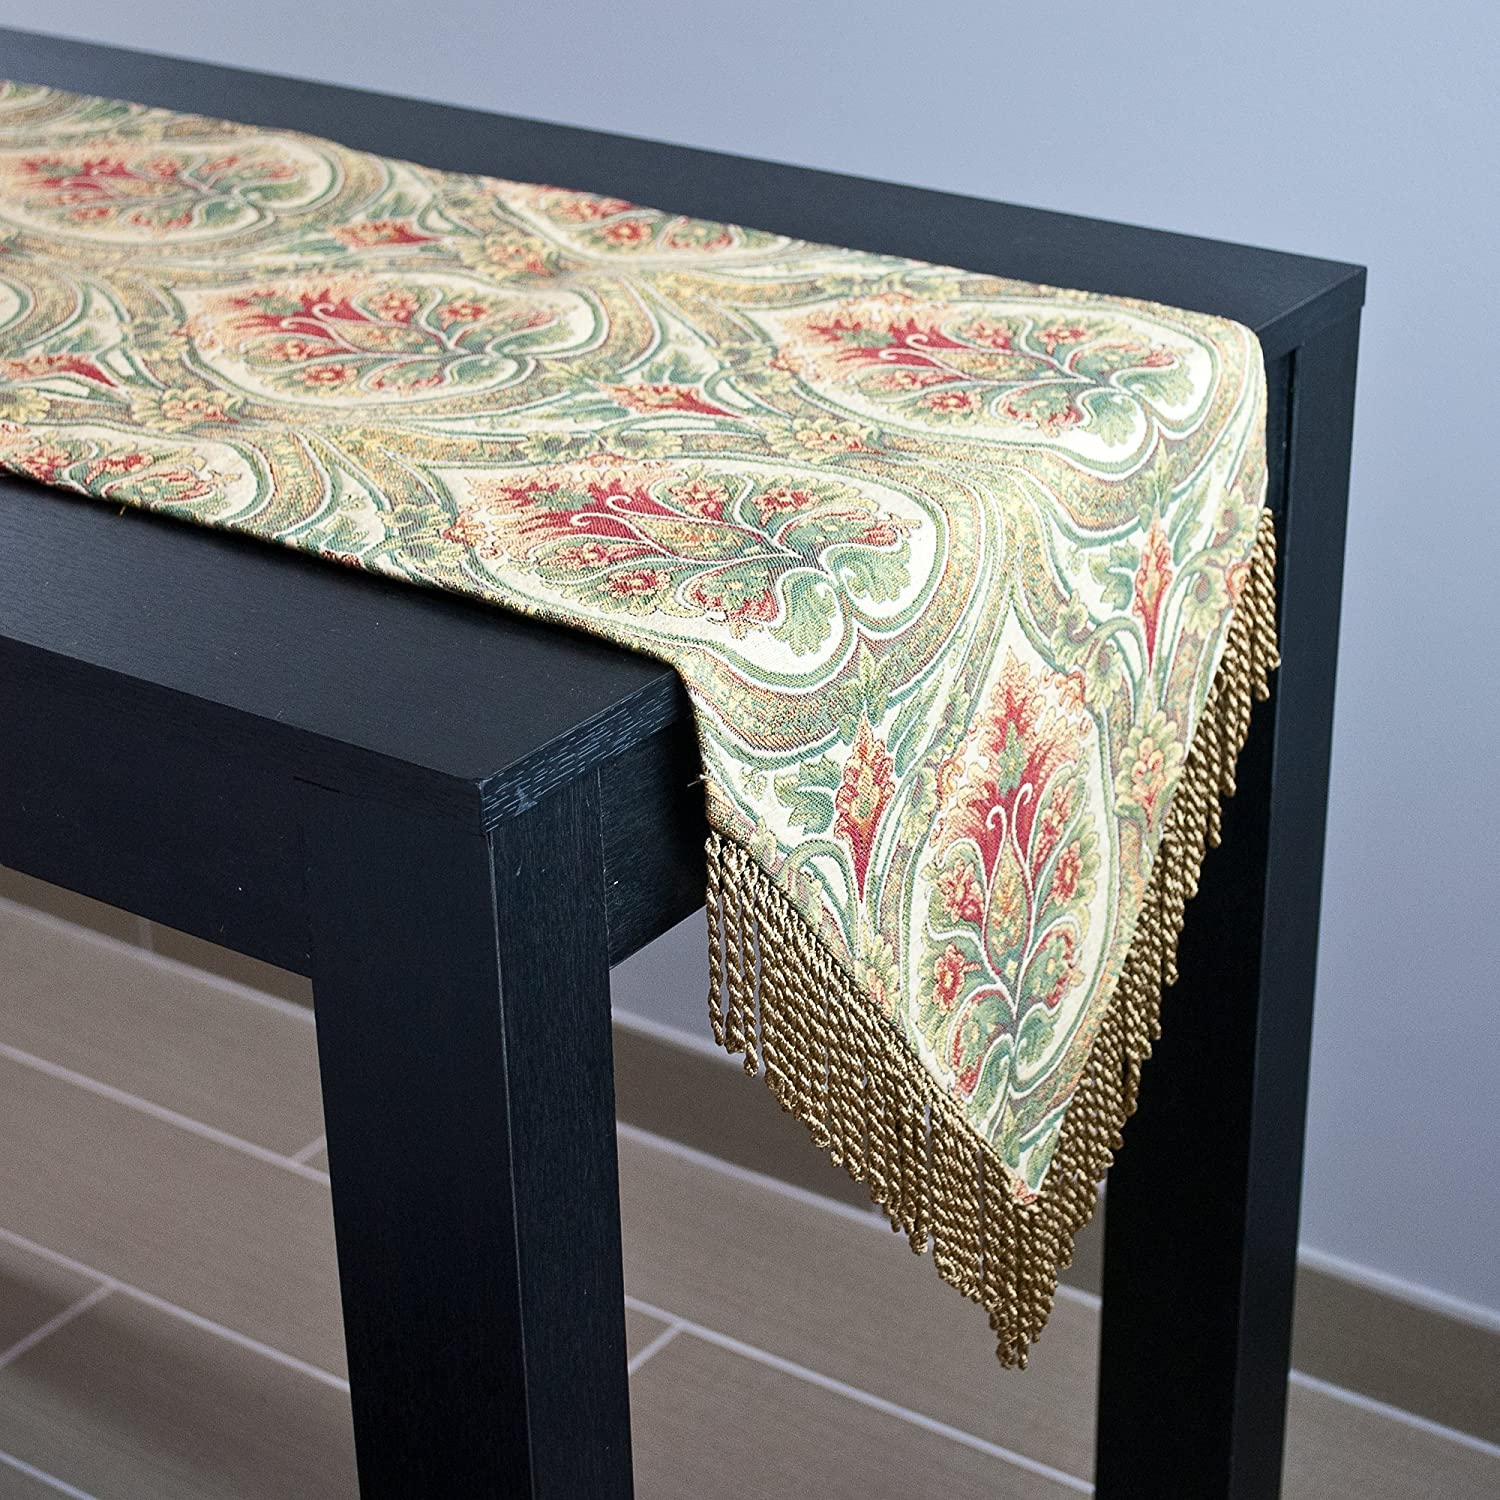 Sherry Kline Hathaway Table Runner Multicolored,13 X 72